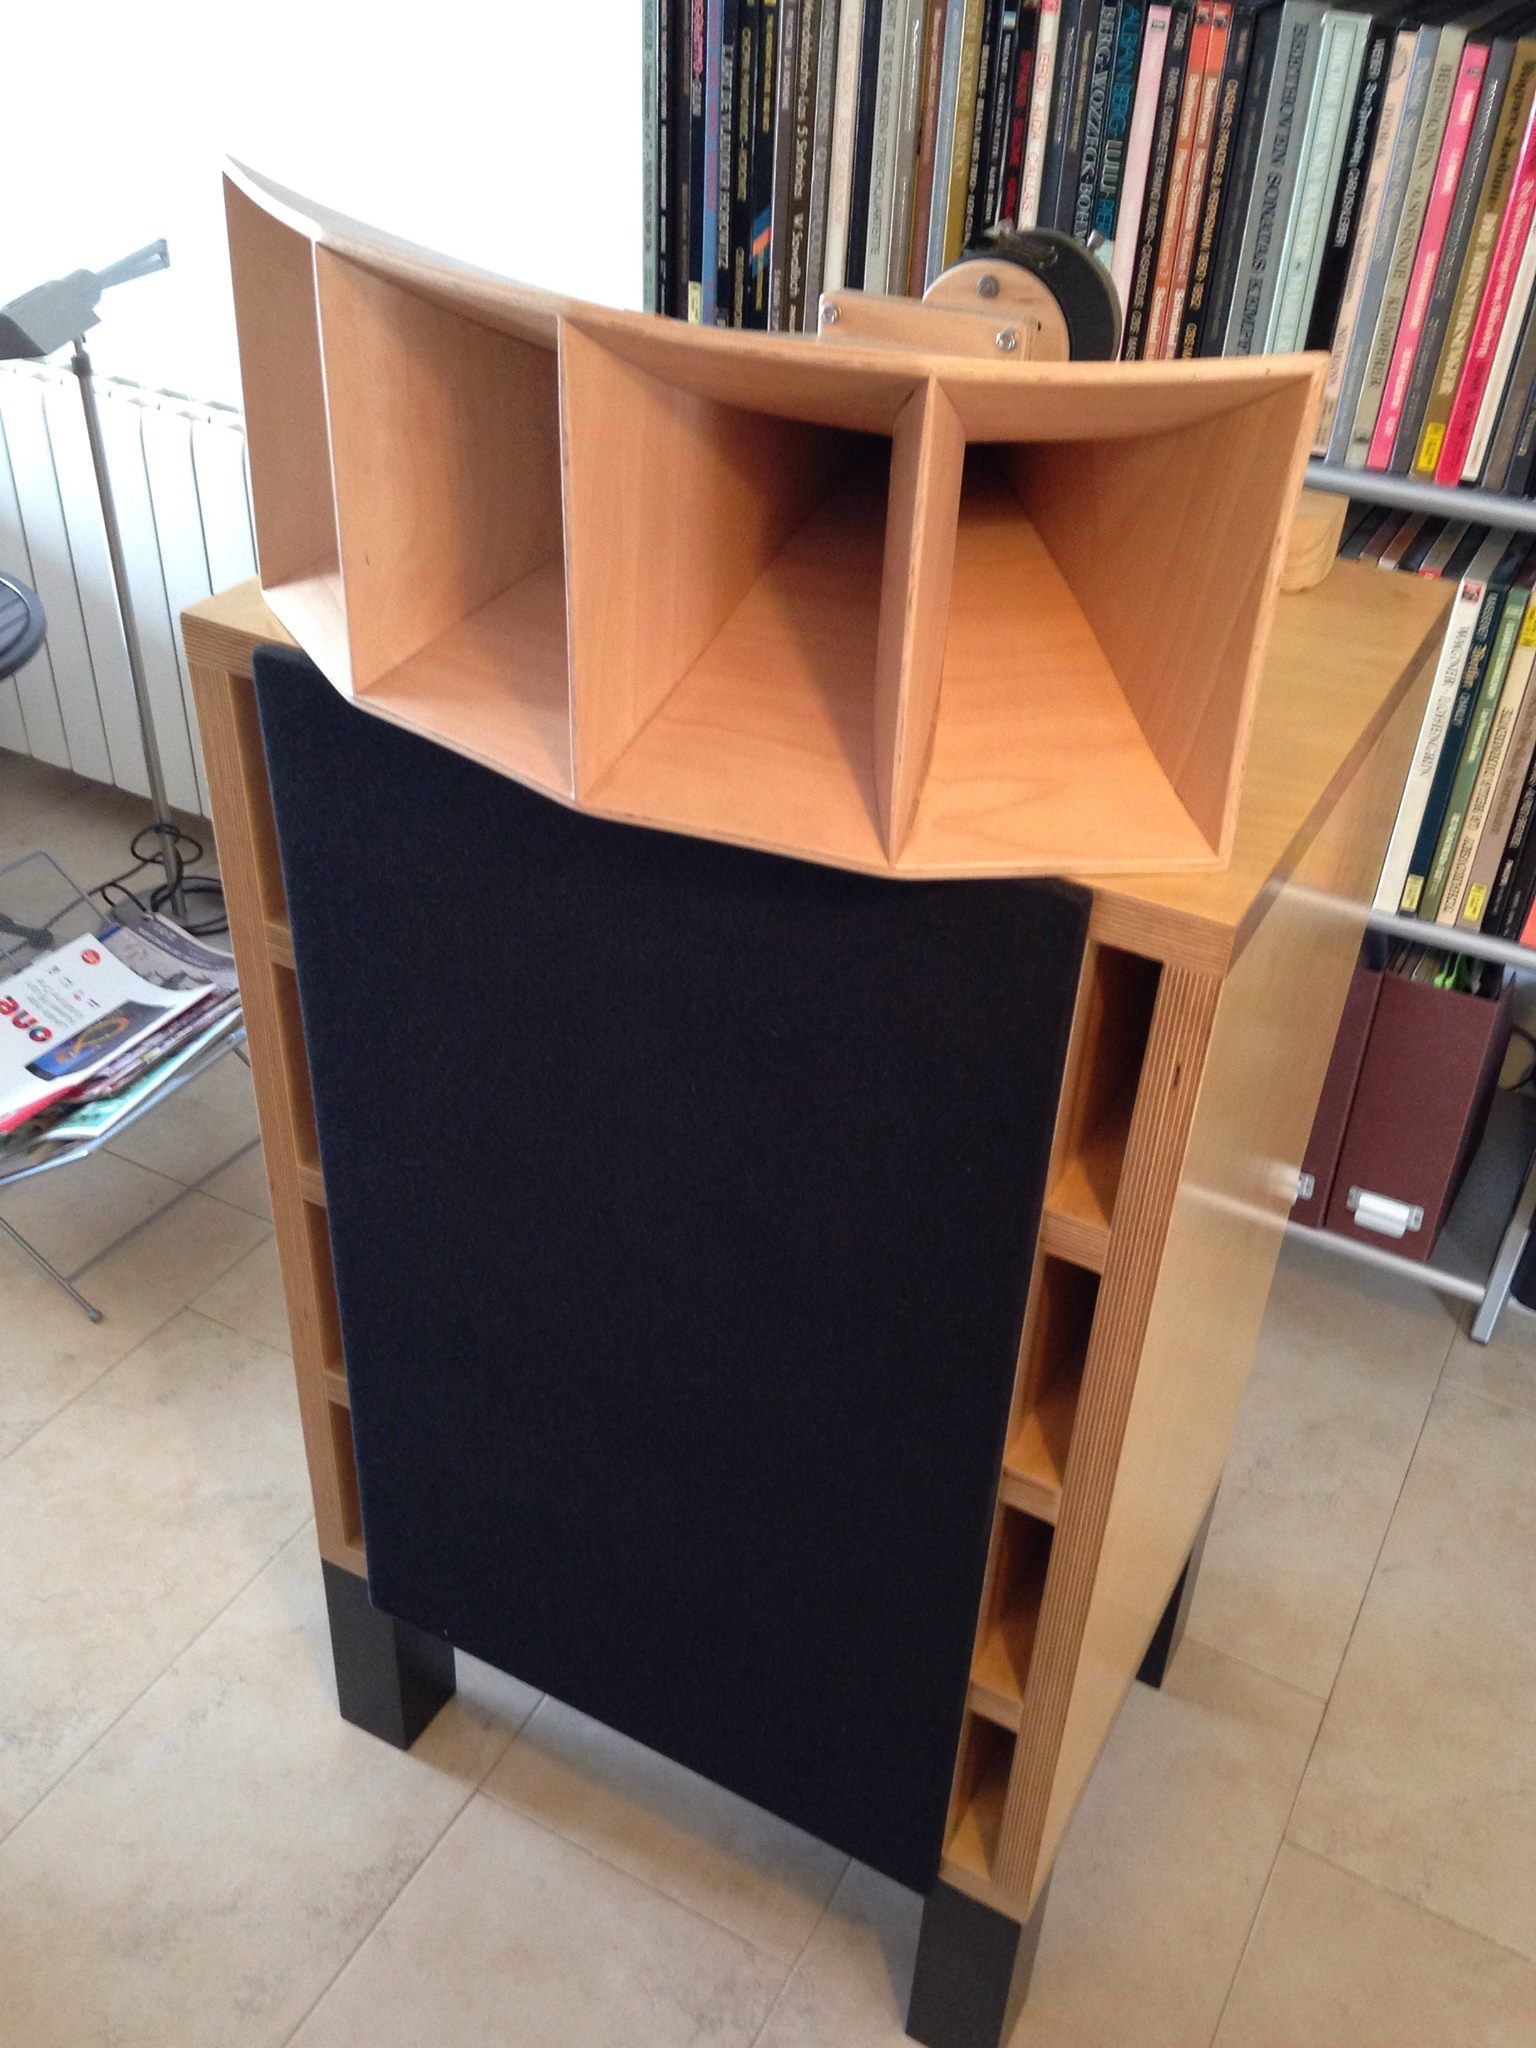 Pin by Harmonia on Horns and Waveguides | Horn speakers